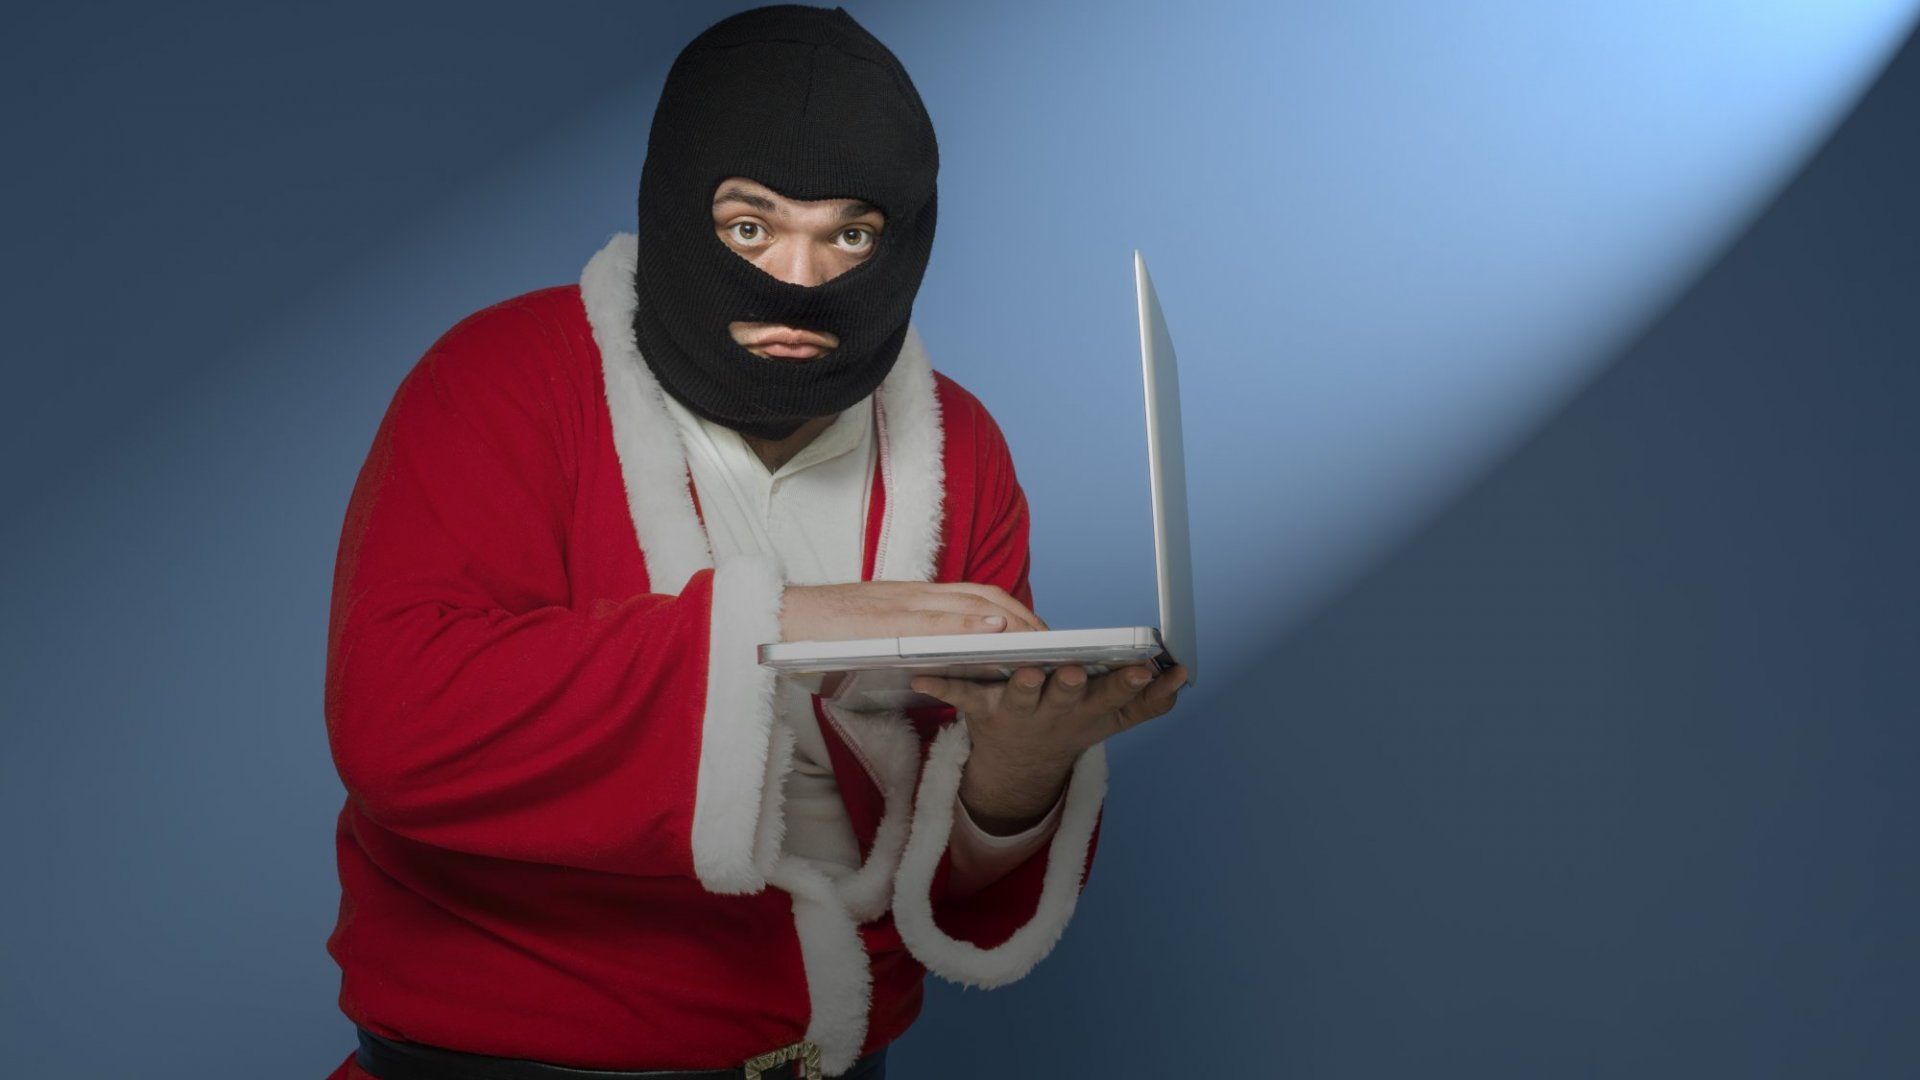 14 Dangerous Holiday Shopping Scams to Avoid